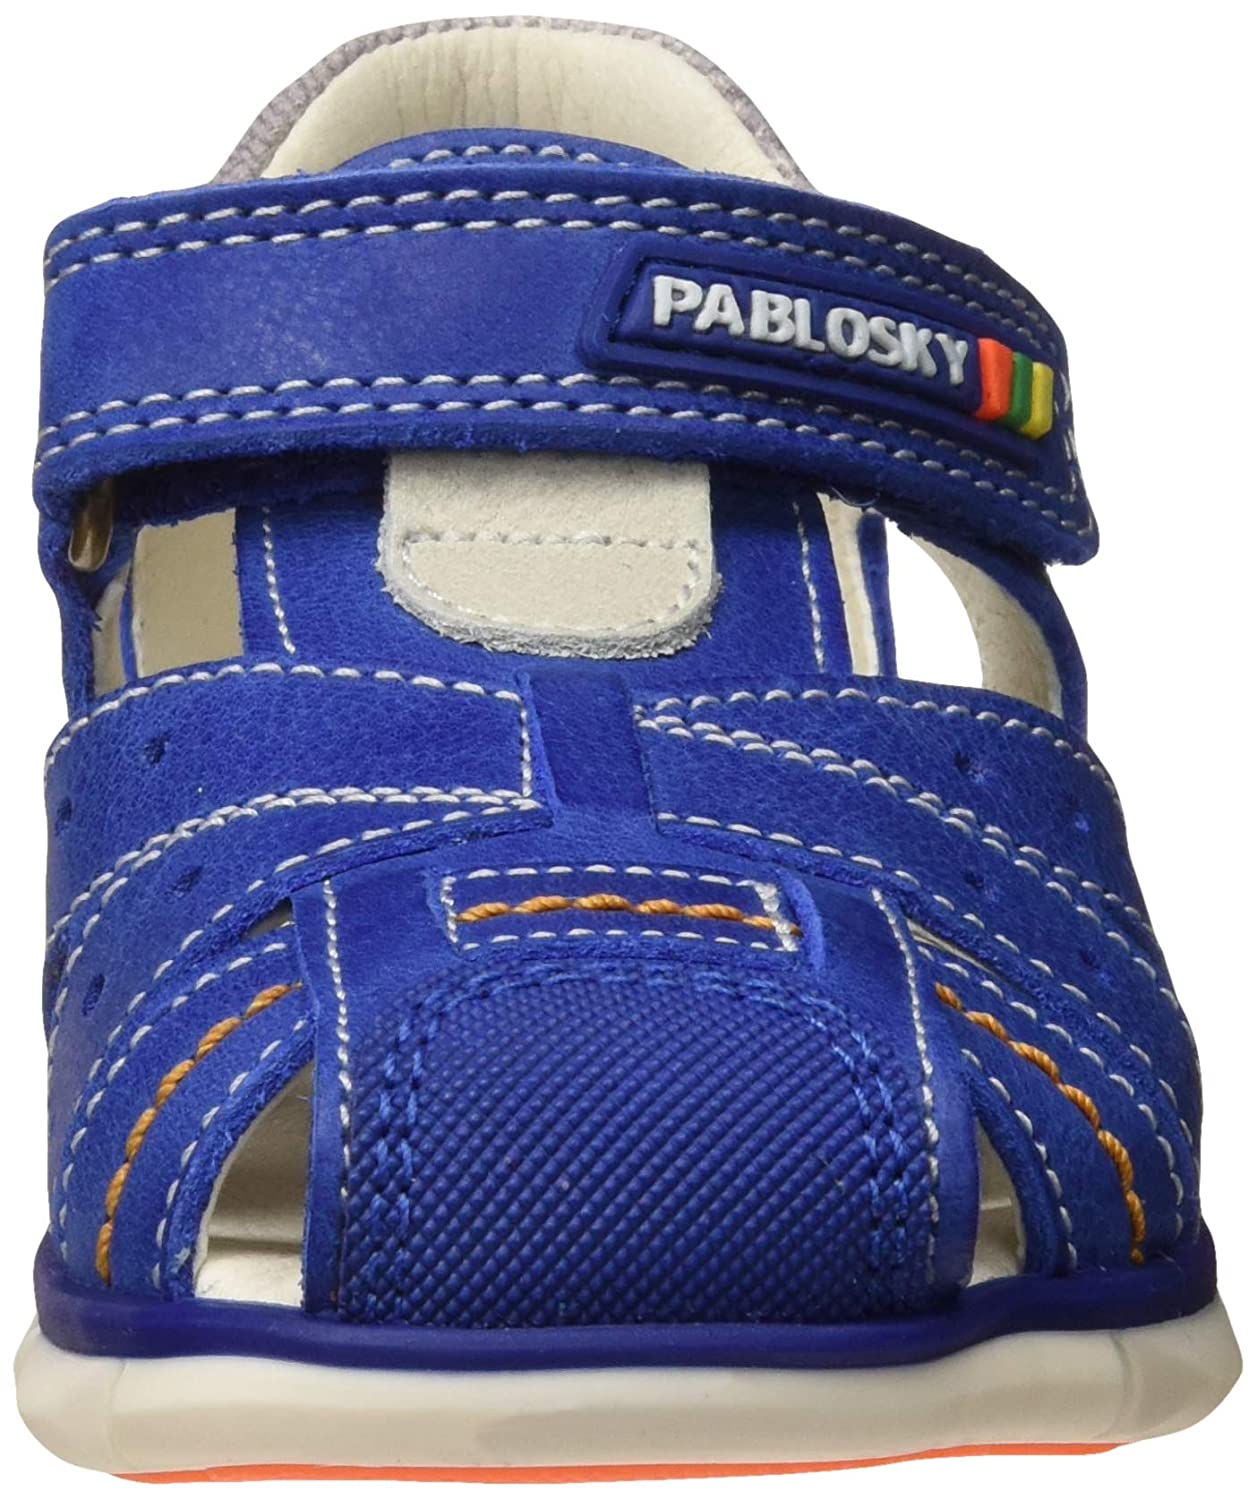 Pablosky Boys/' 589046 Closed Toe Sandals